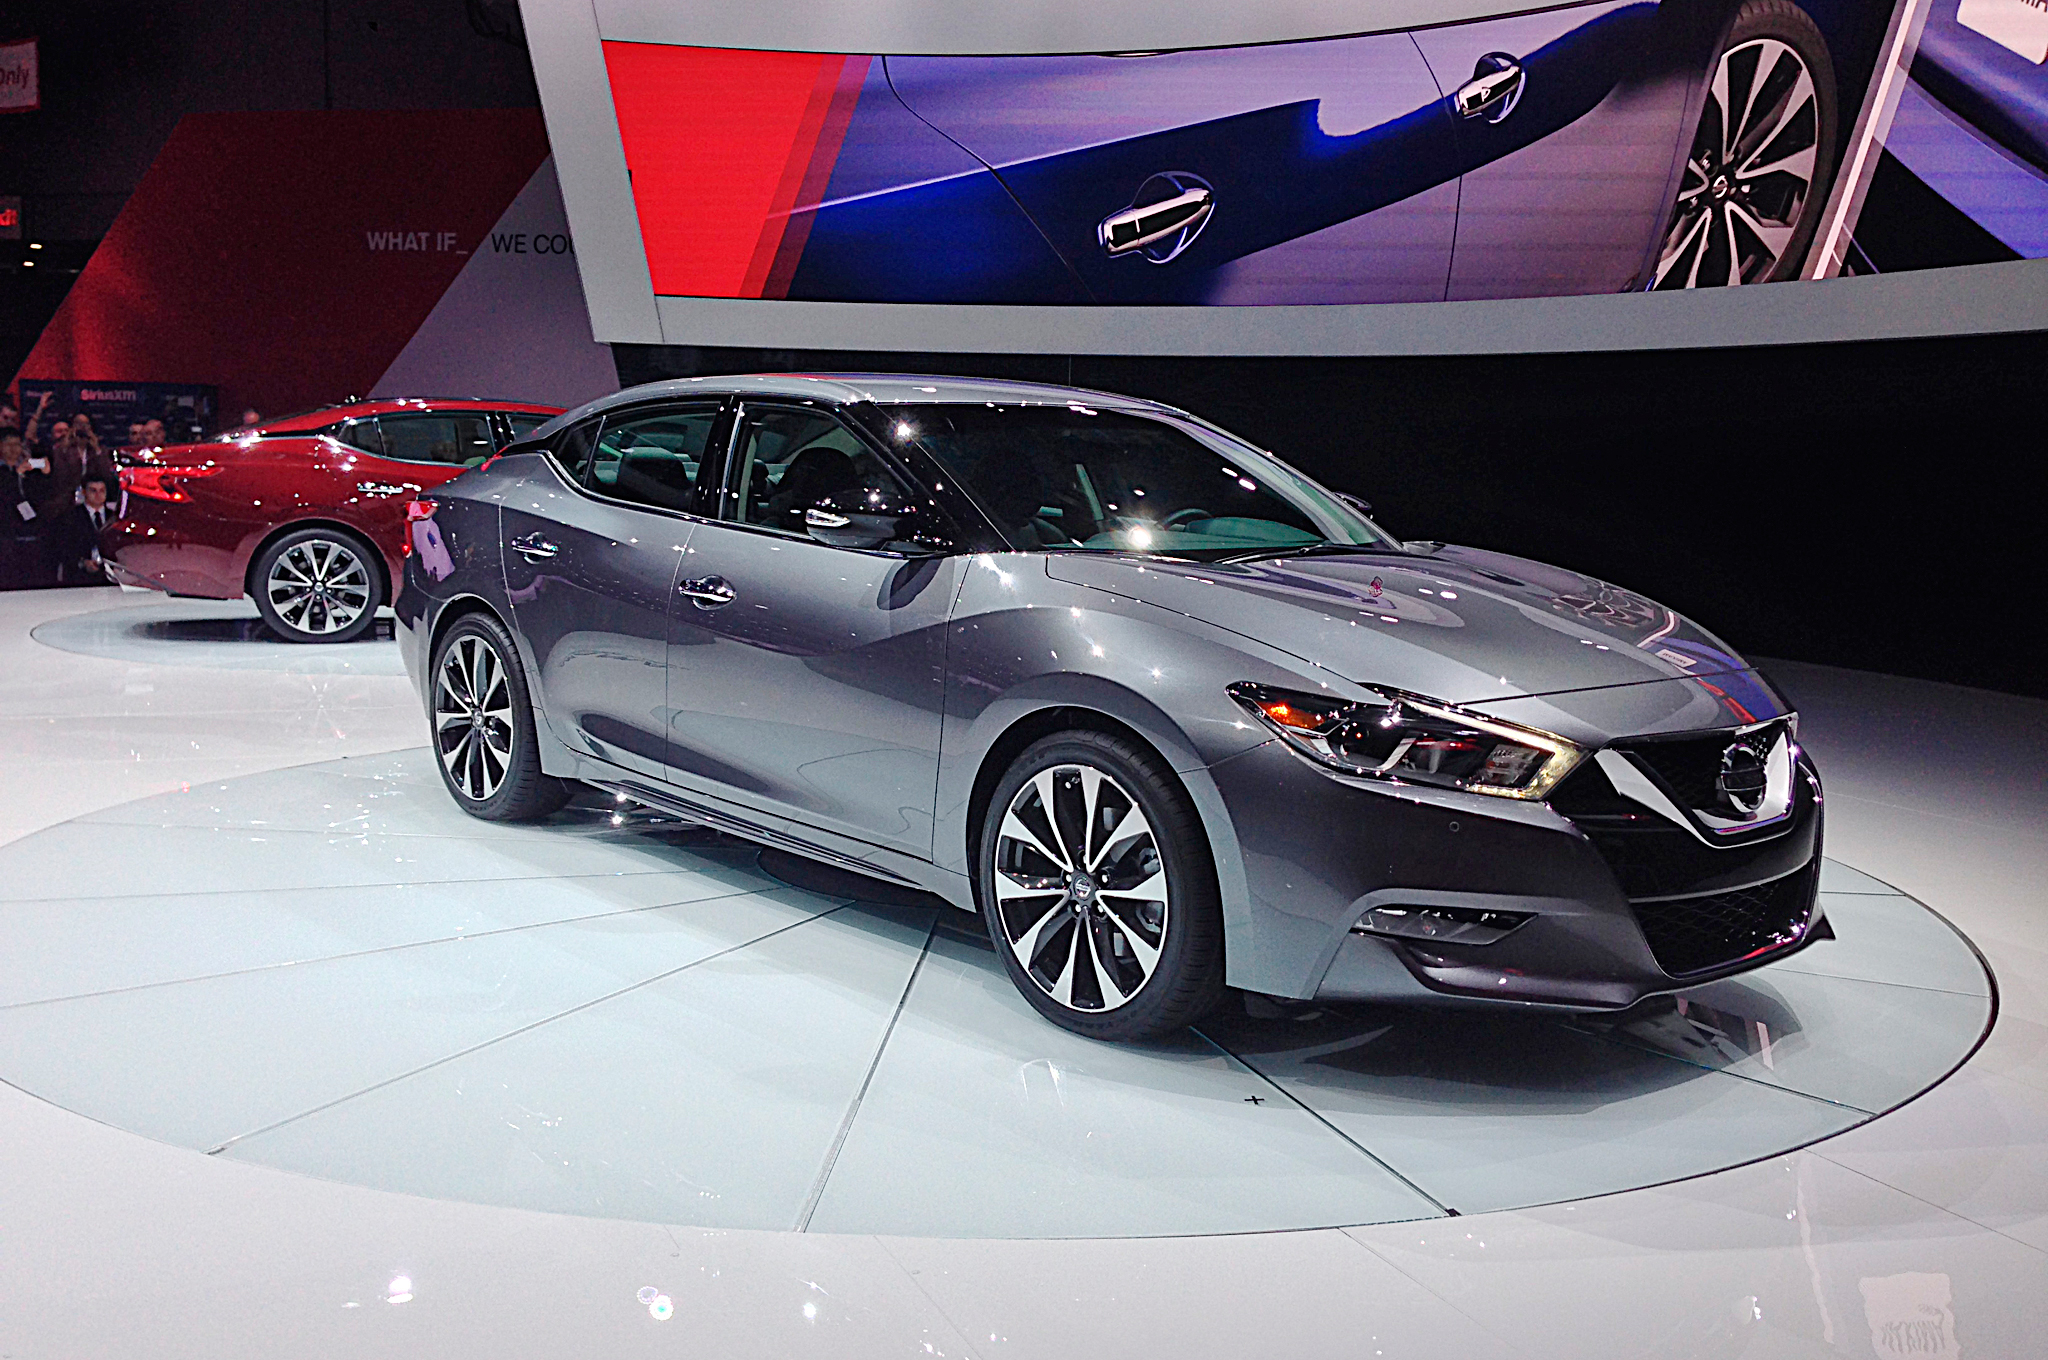 2016 nissan maxima first look - motortrend